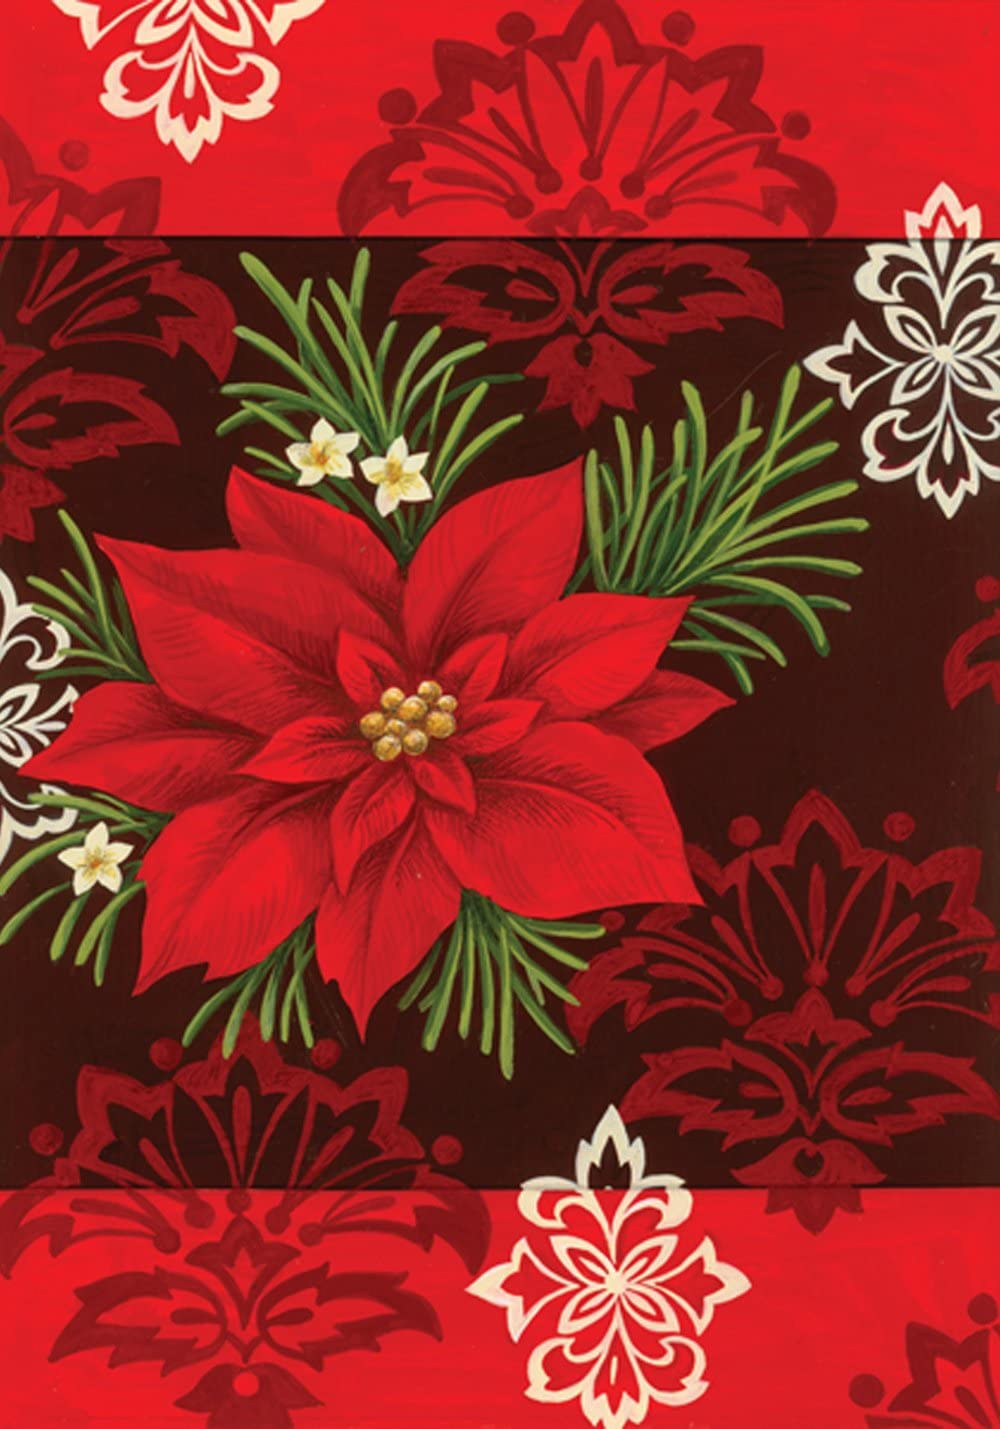 Toland Home Garden Red Damask 12.5 x 18 Inch Decorative Colorful Poinsettia Christmas Flower Garden Flag - 110571